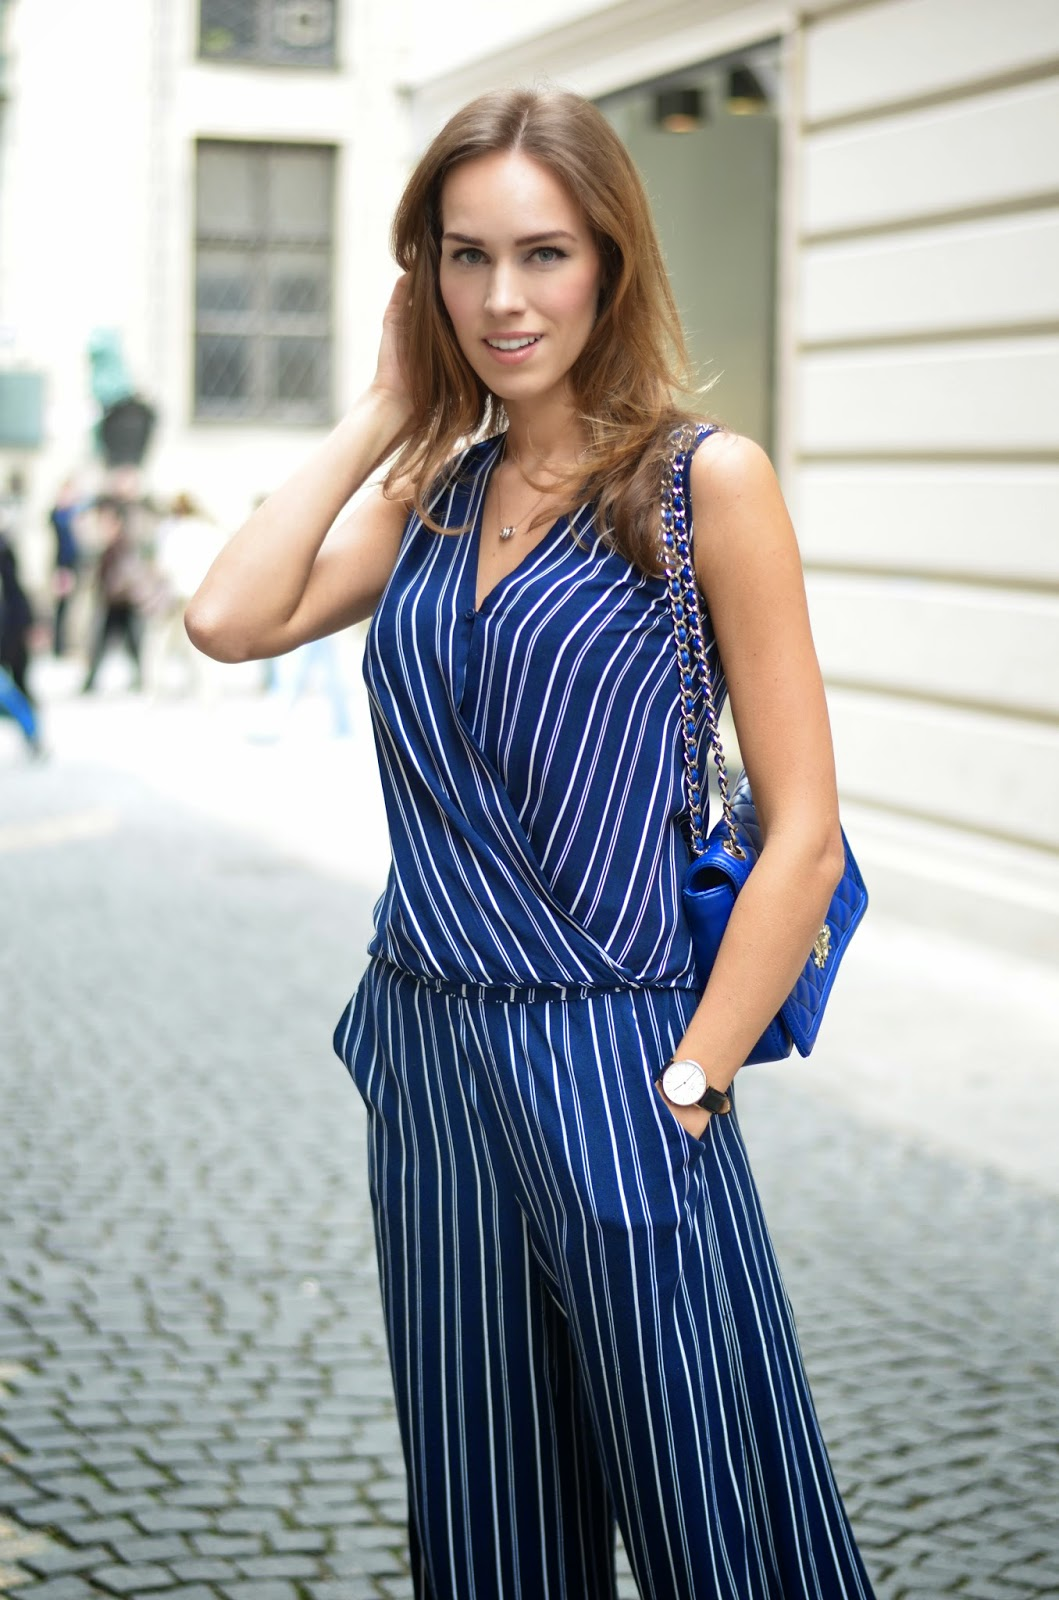 kristjaana mere striped navy jumpsuit summer outfit